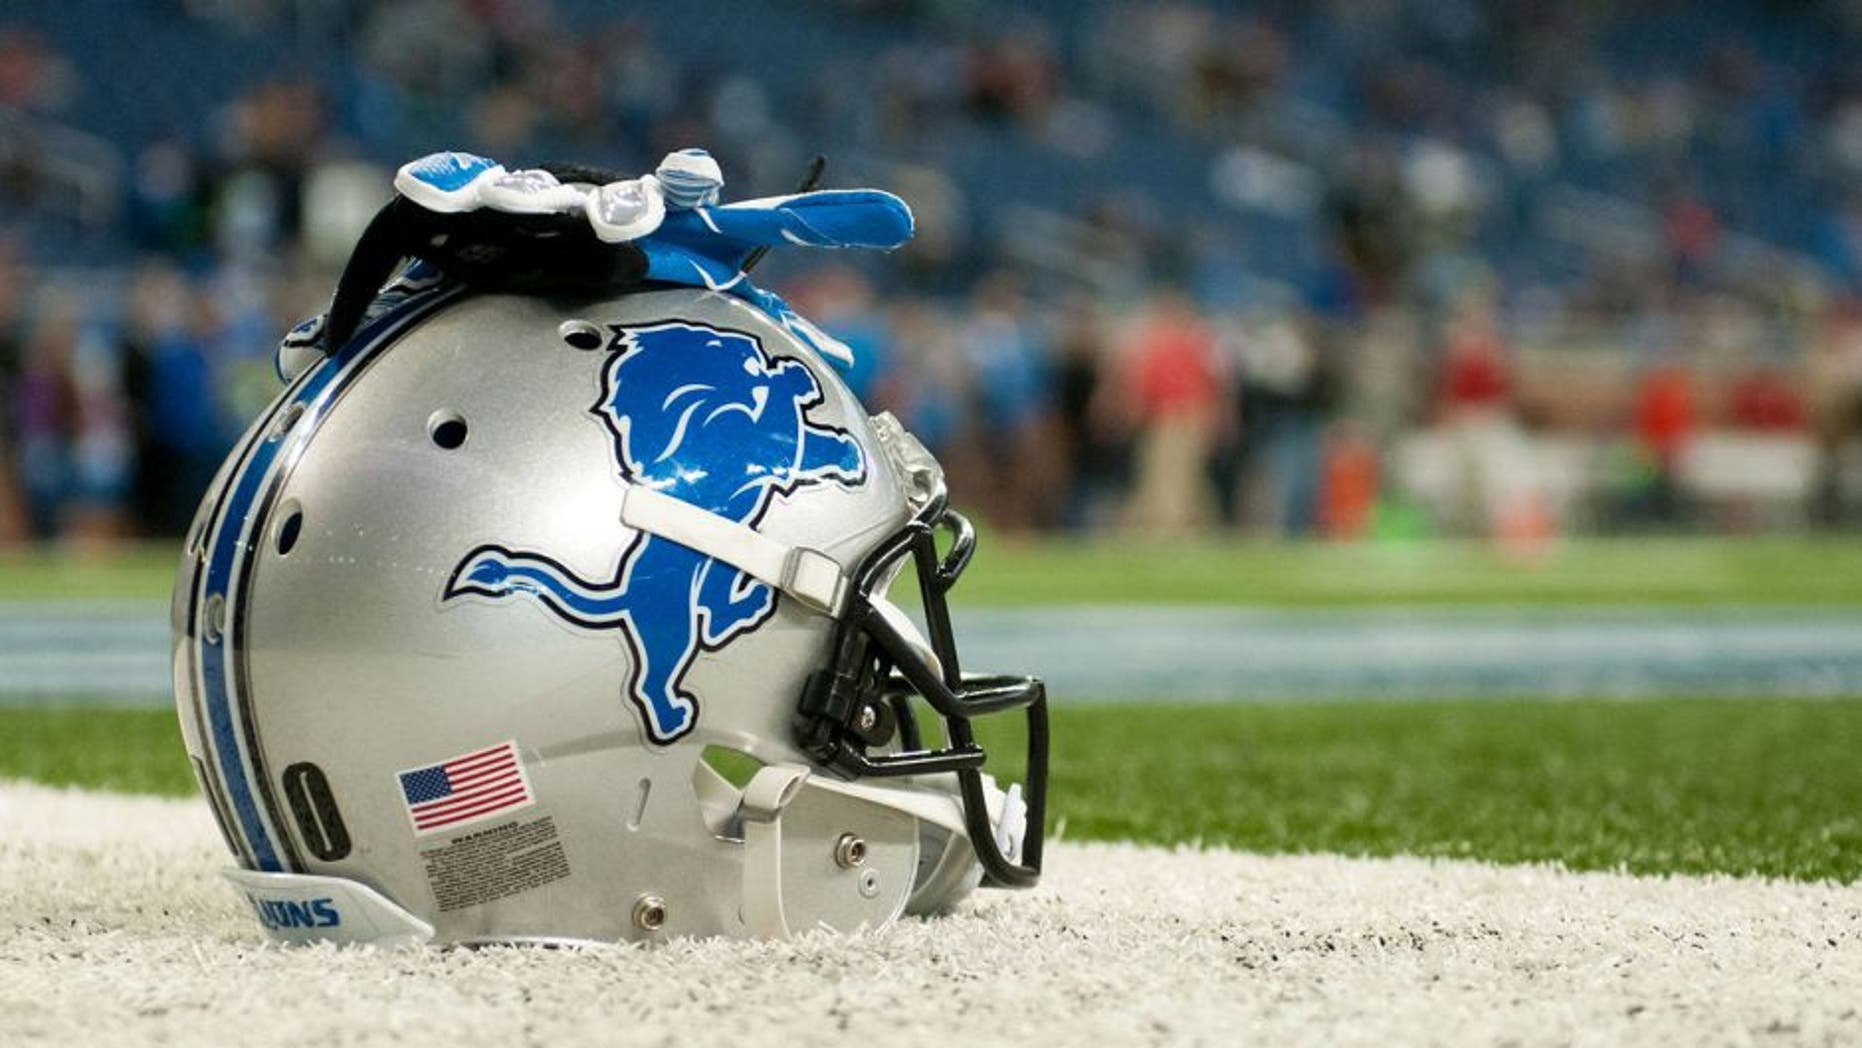 Dec 7, 2014; Detroit, MI, USA; A detailed view of a Detroit Lions helmet and gloves before the game against the Tampa Bay Buccaneers at Ford Field. Mandatory Credit: Tim Fuller-USA TODAY Sports